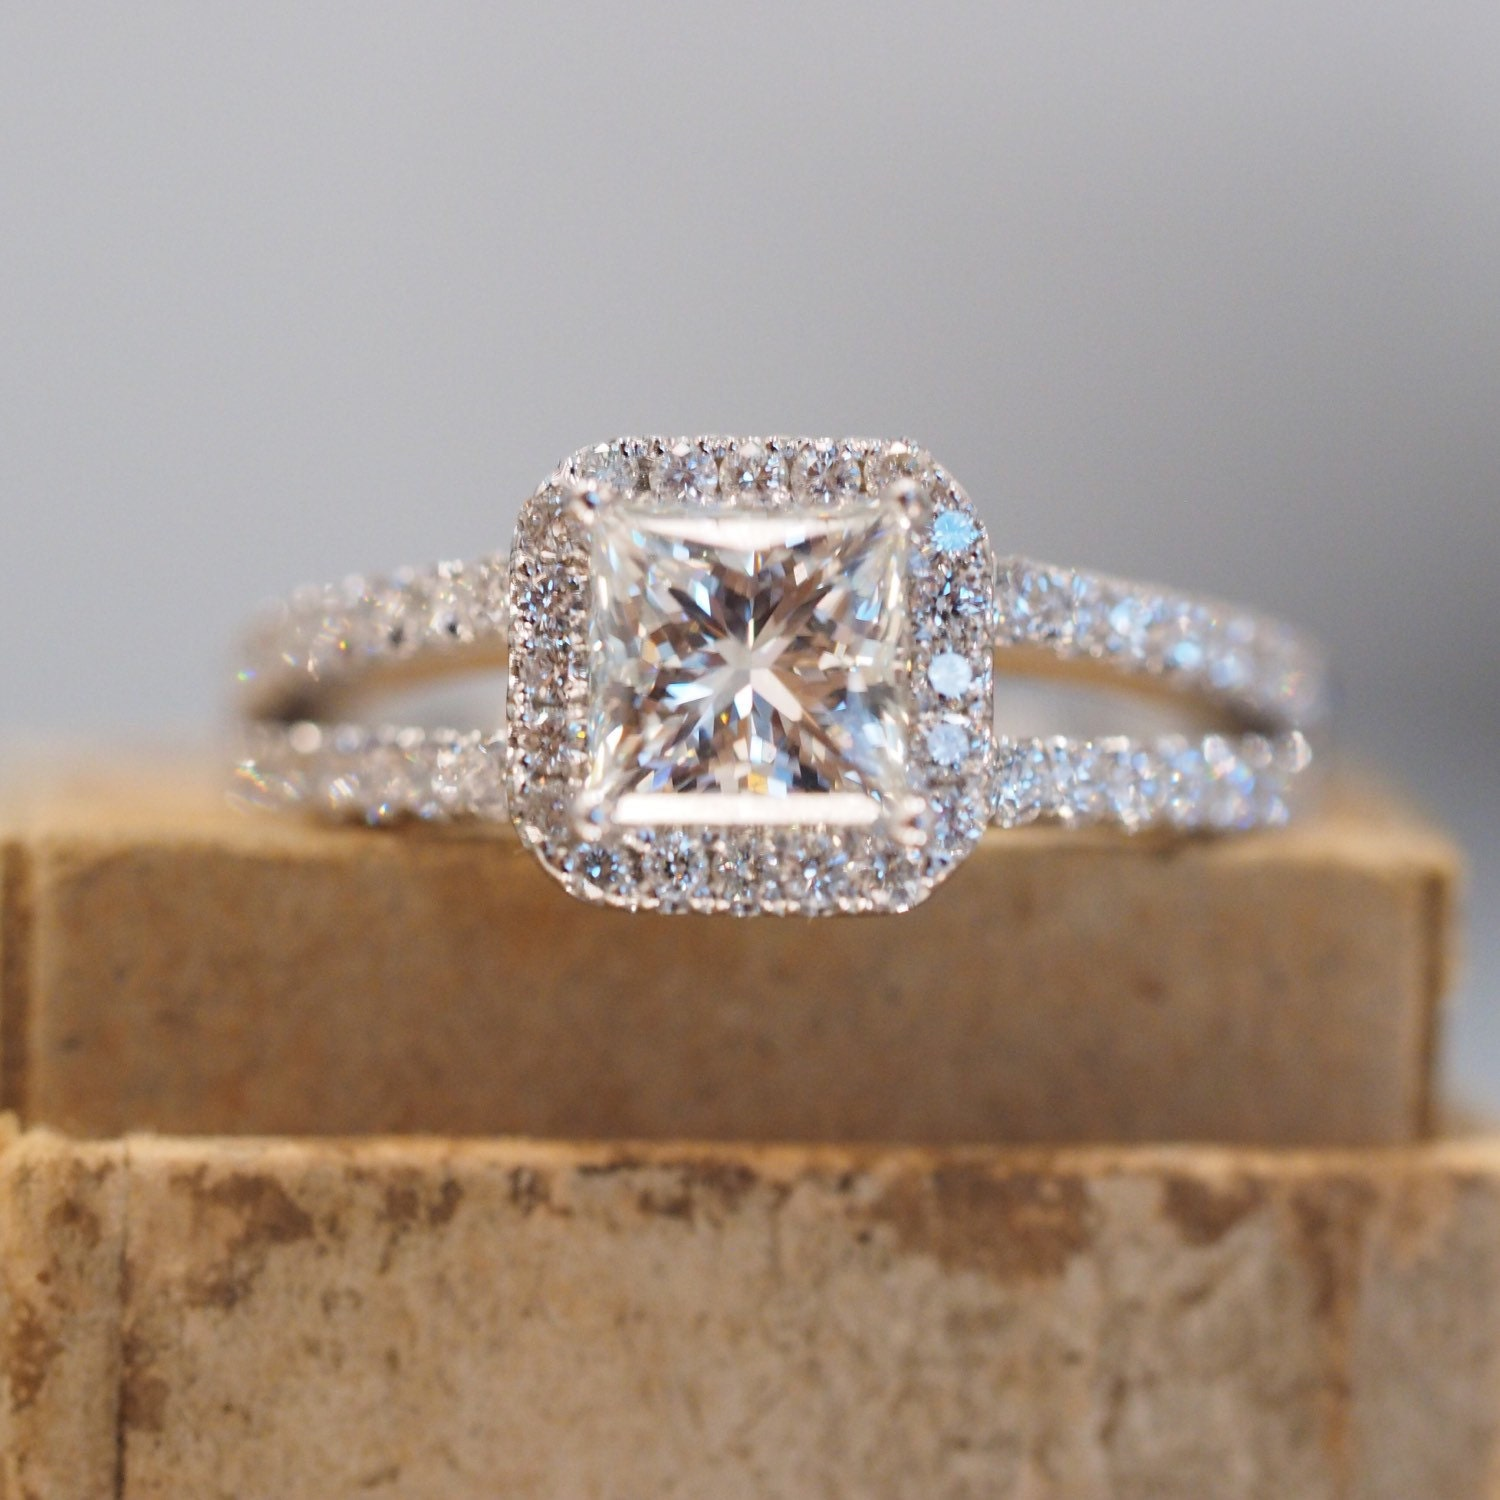 Halo Princess Cut Engagement Ring with Split Shank Band in